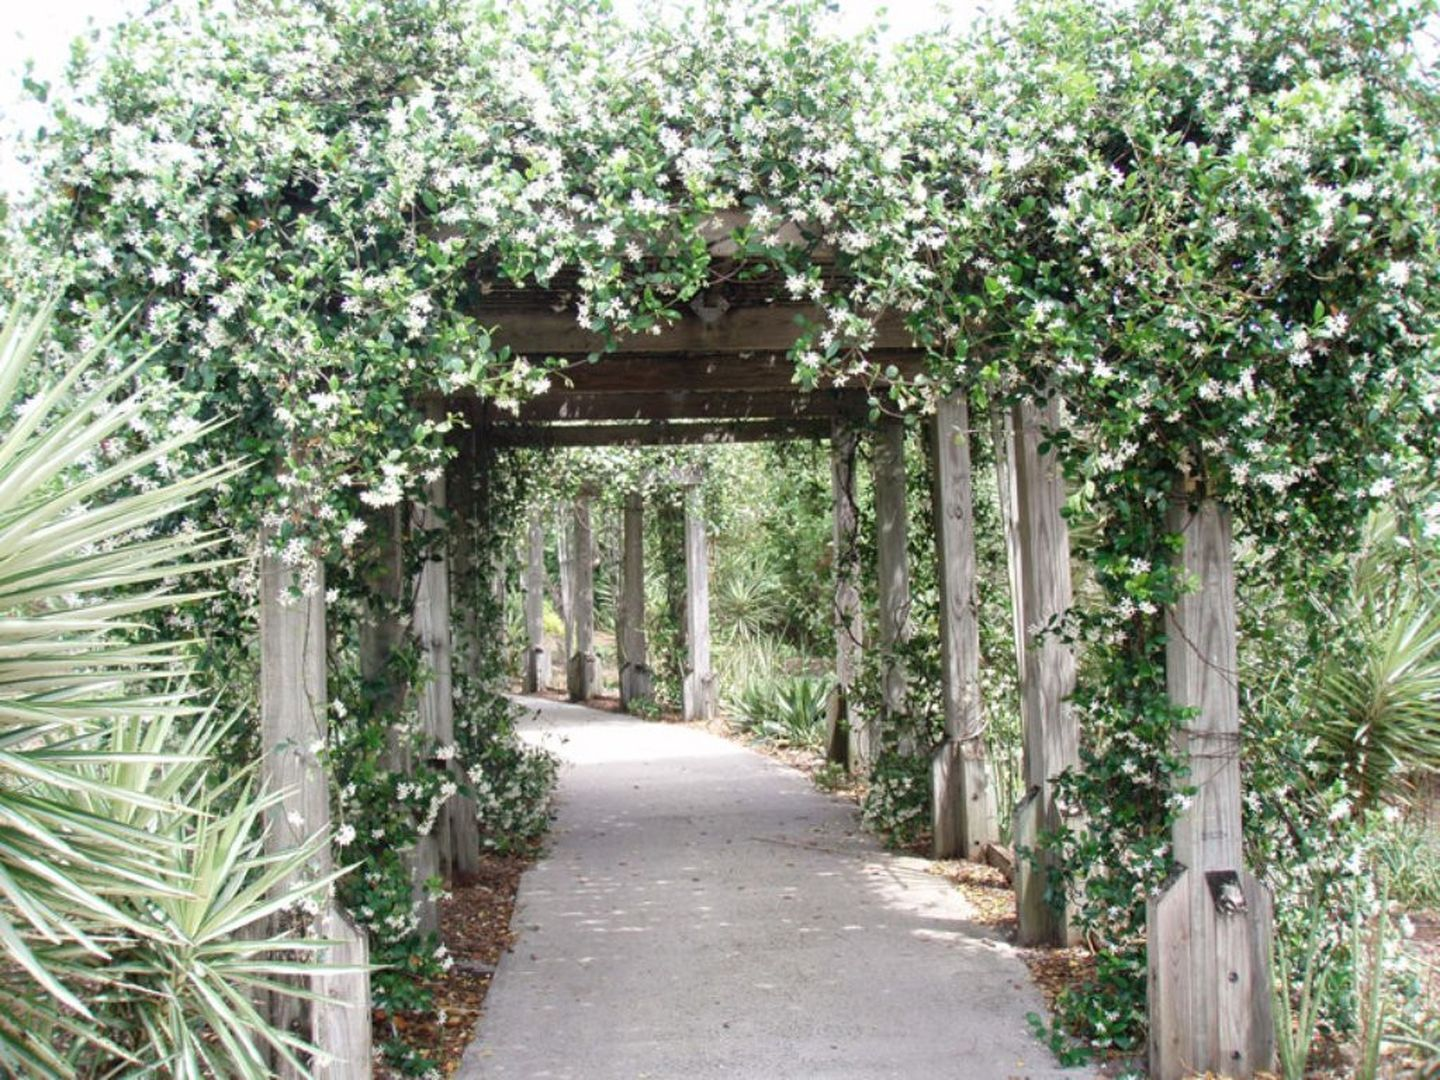 Private Back Yard Ideas - Stunning Beautiful Evergreen Vines Ideas For Your  Home 43 - 17 Best Climbing Plants For Pergolas And Trellises Arbors